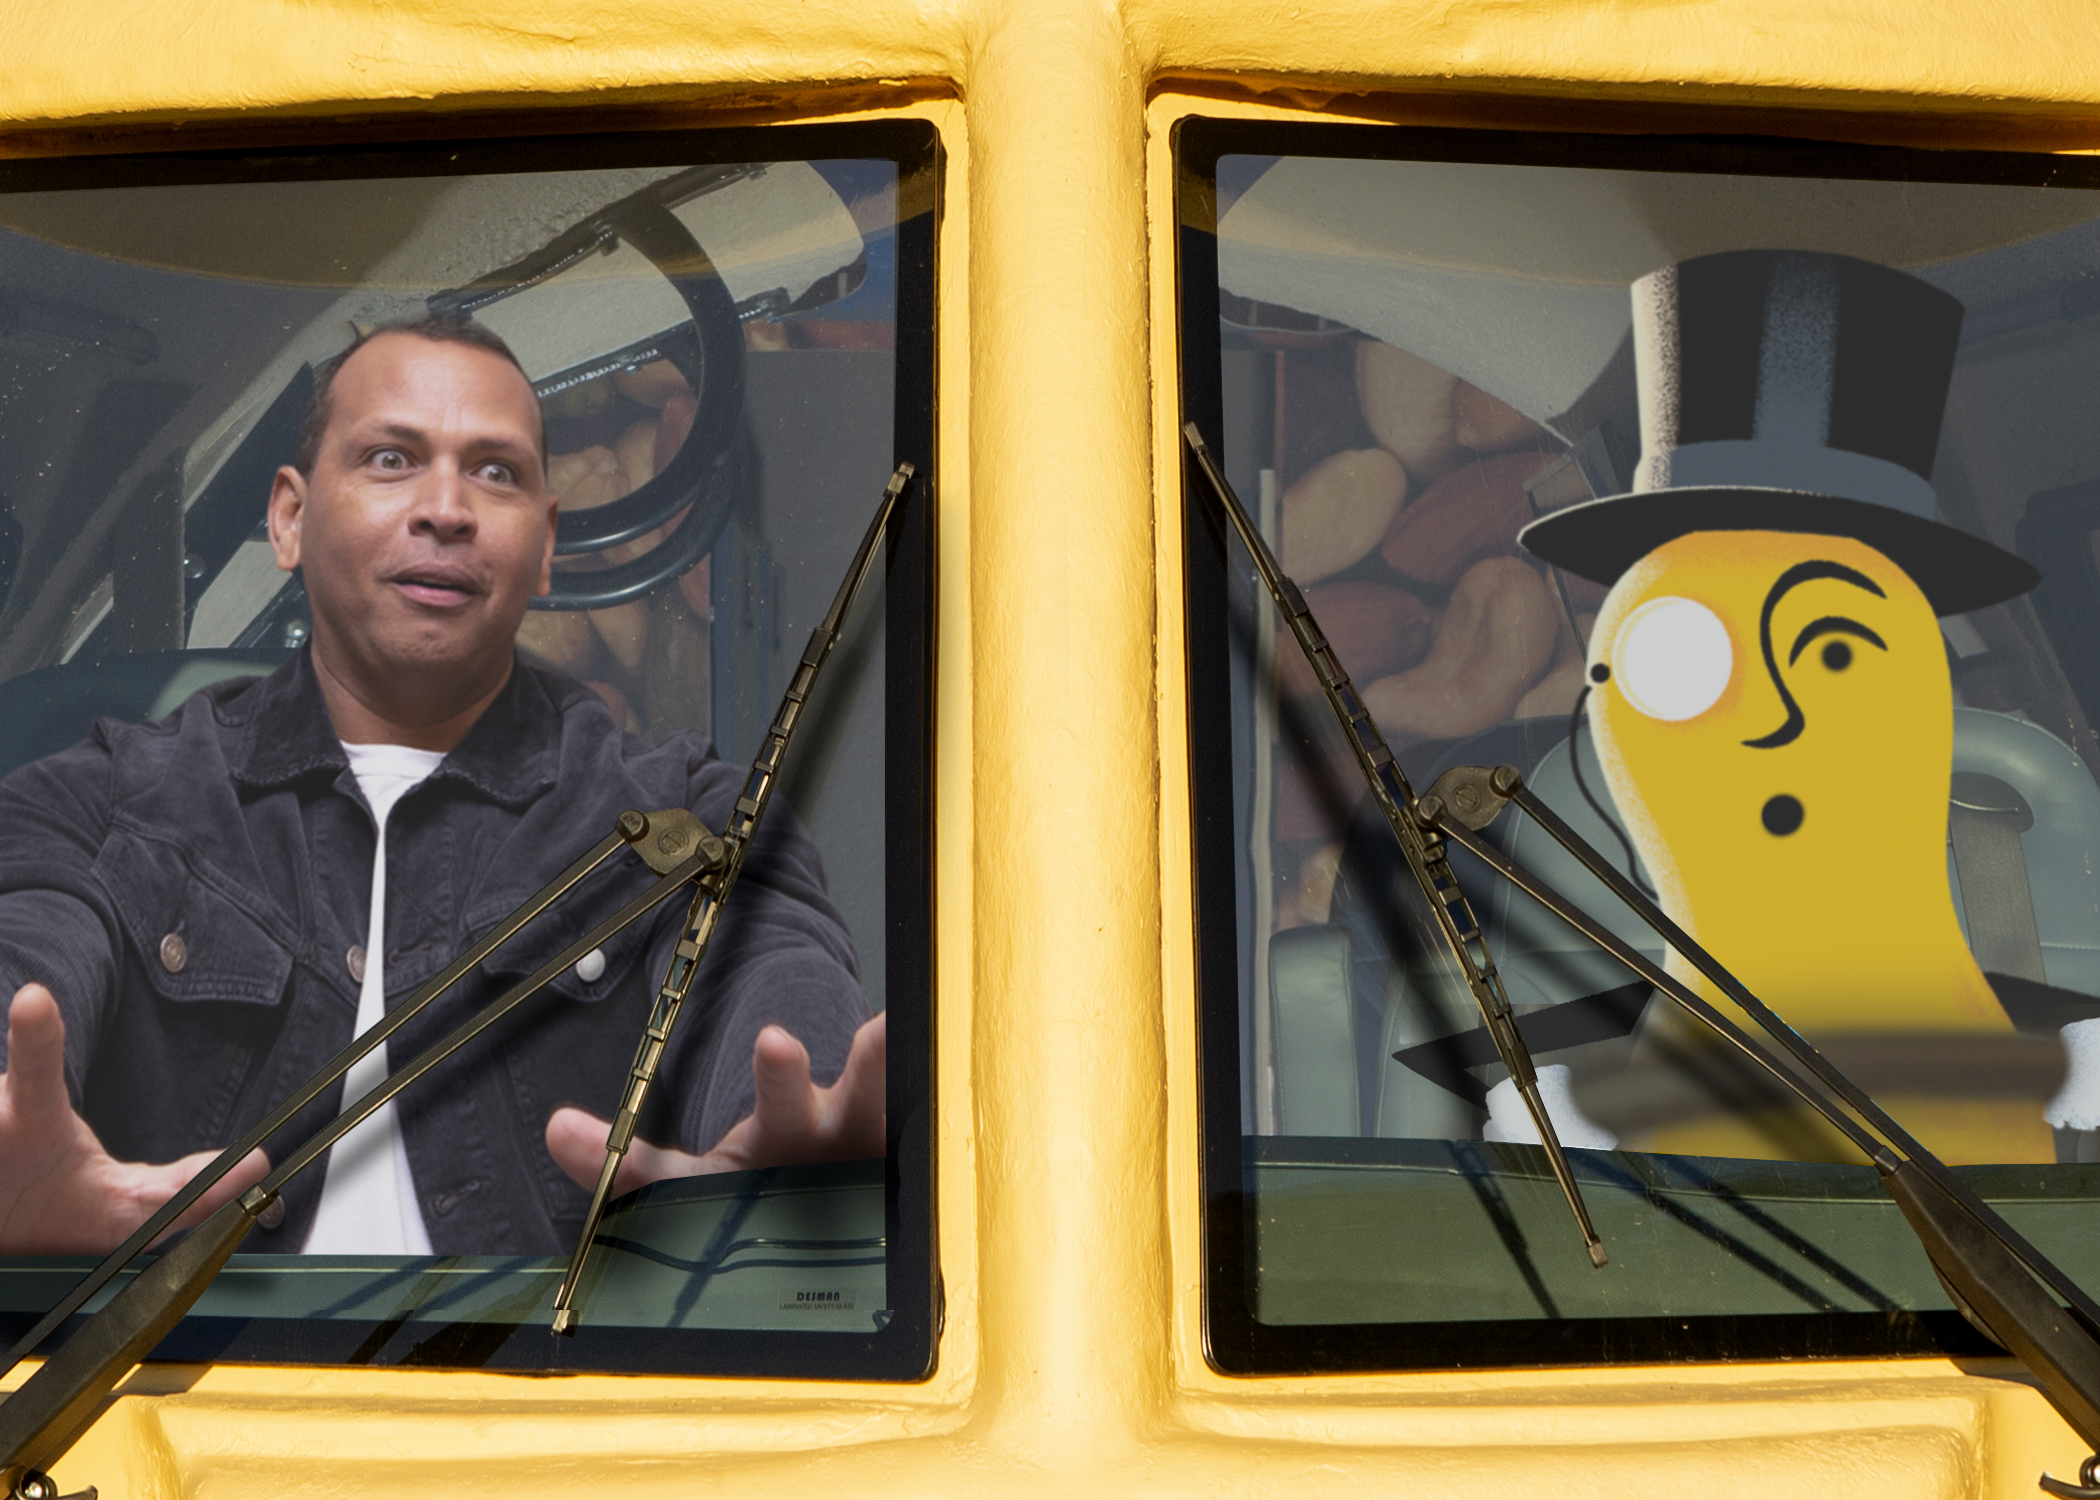 2019 Planters Super Bowl commercial with Mr. Peanut and Alex Rodriguez